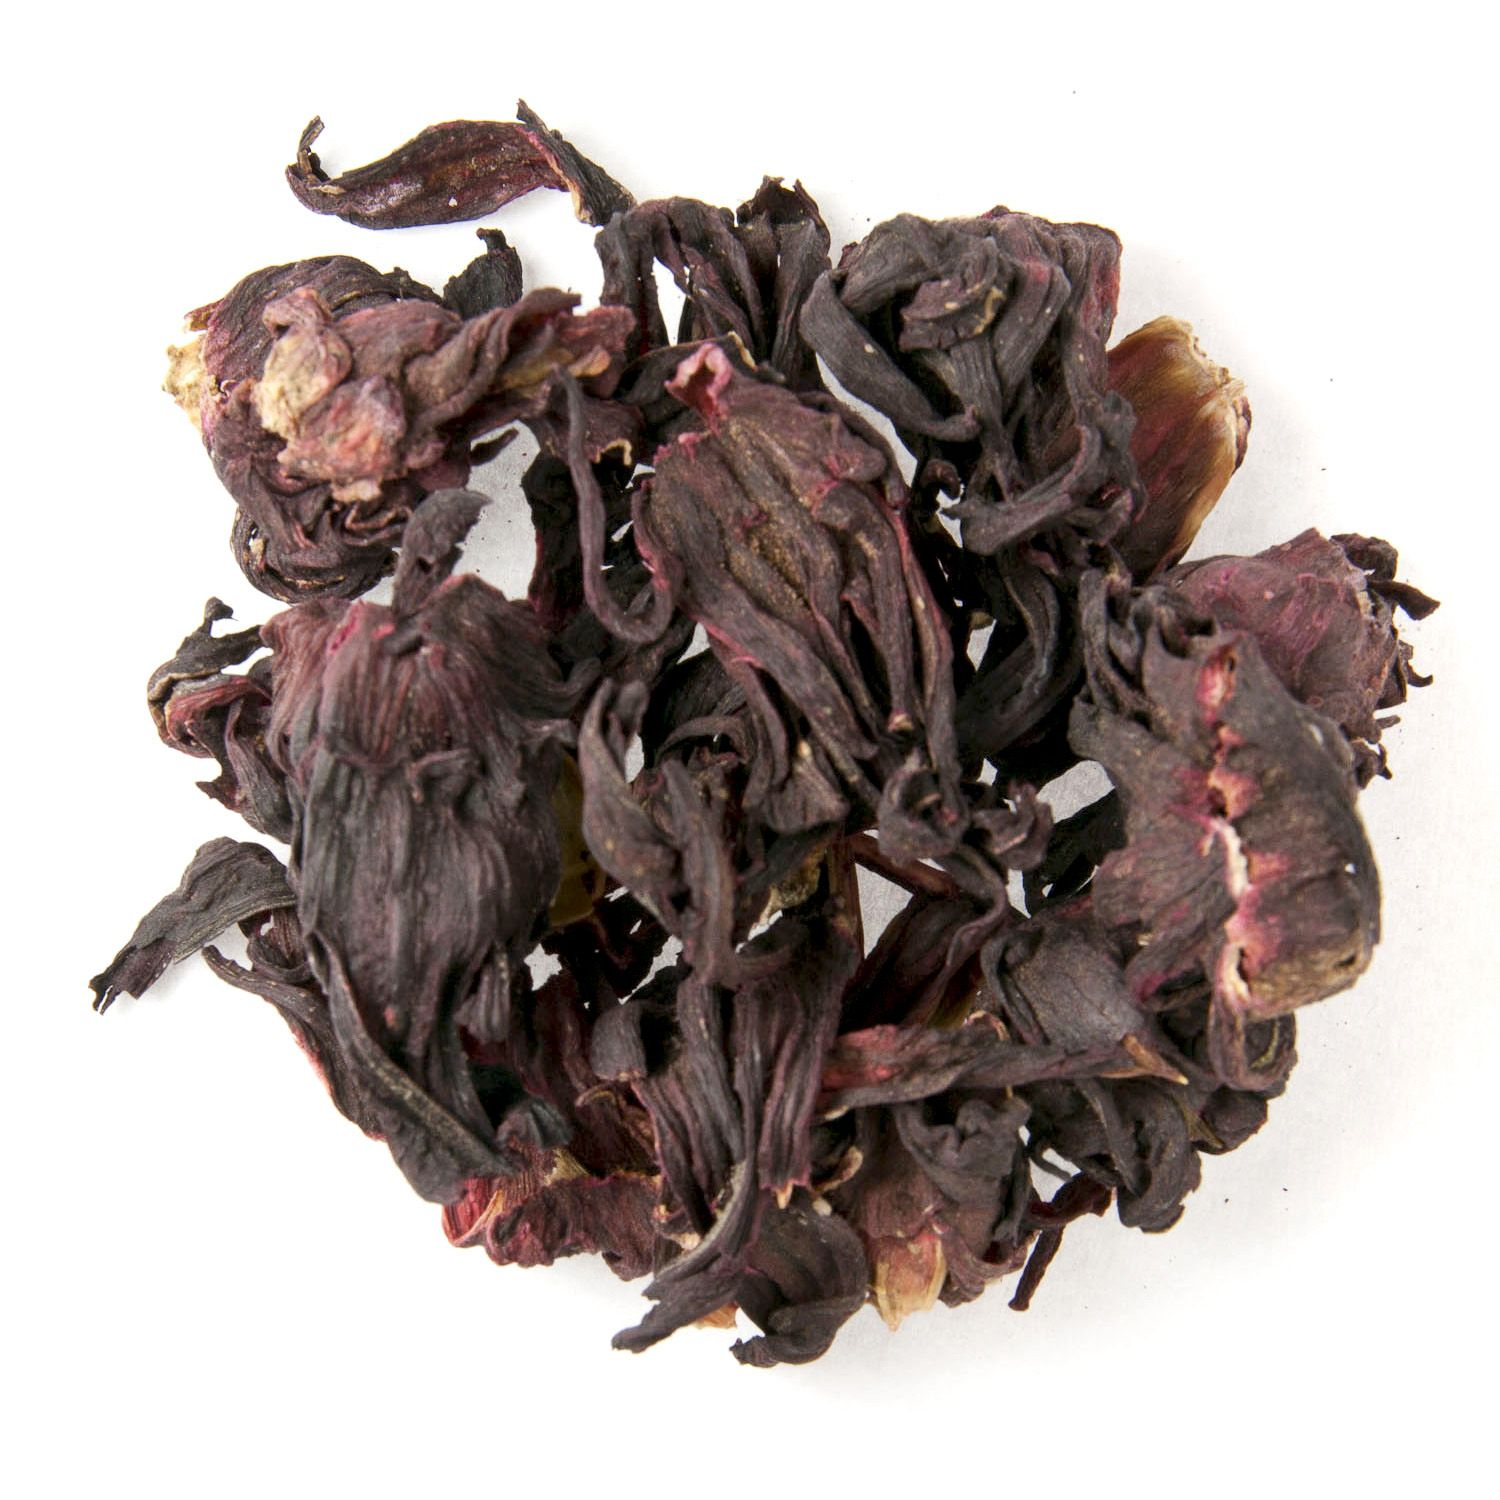 The calyces often referred to as the hibiscus flower itself which the calyces often referred to as the hibiscus flower itself which form the outer covering of the flower buds are dried and used to make a rosy citrus izmirmasajfo